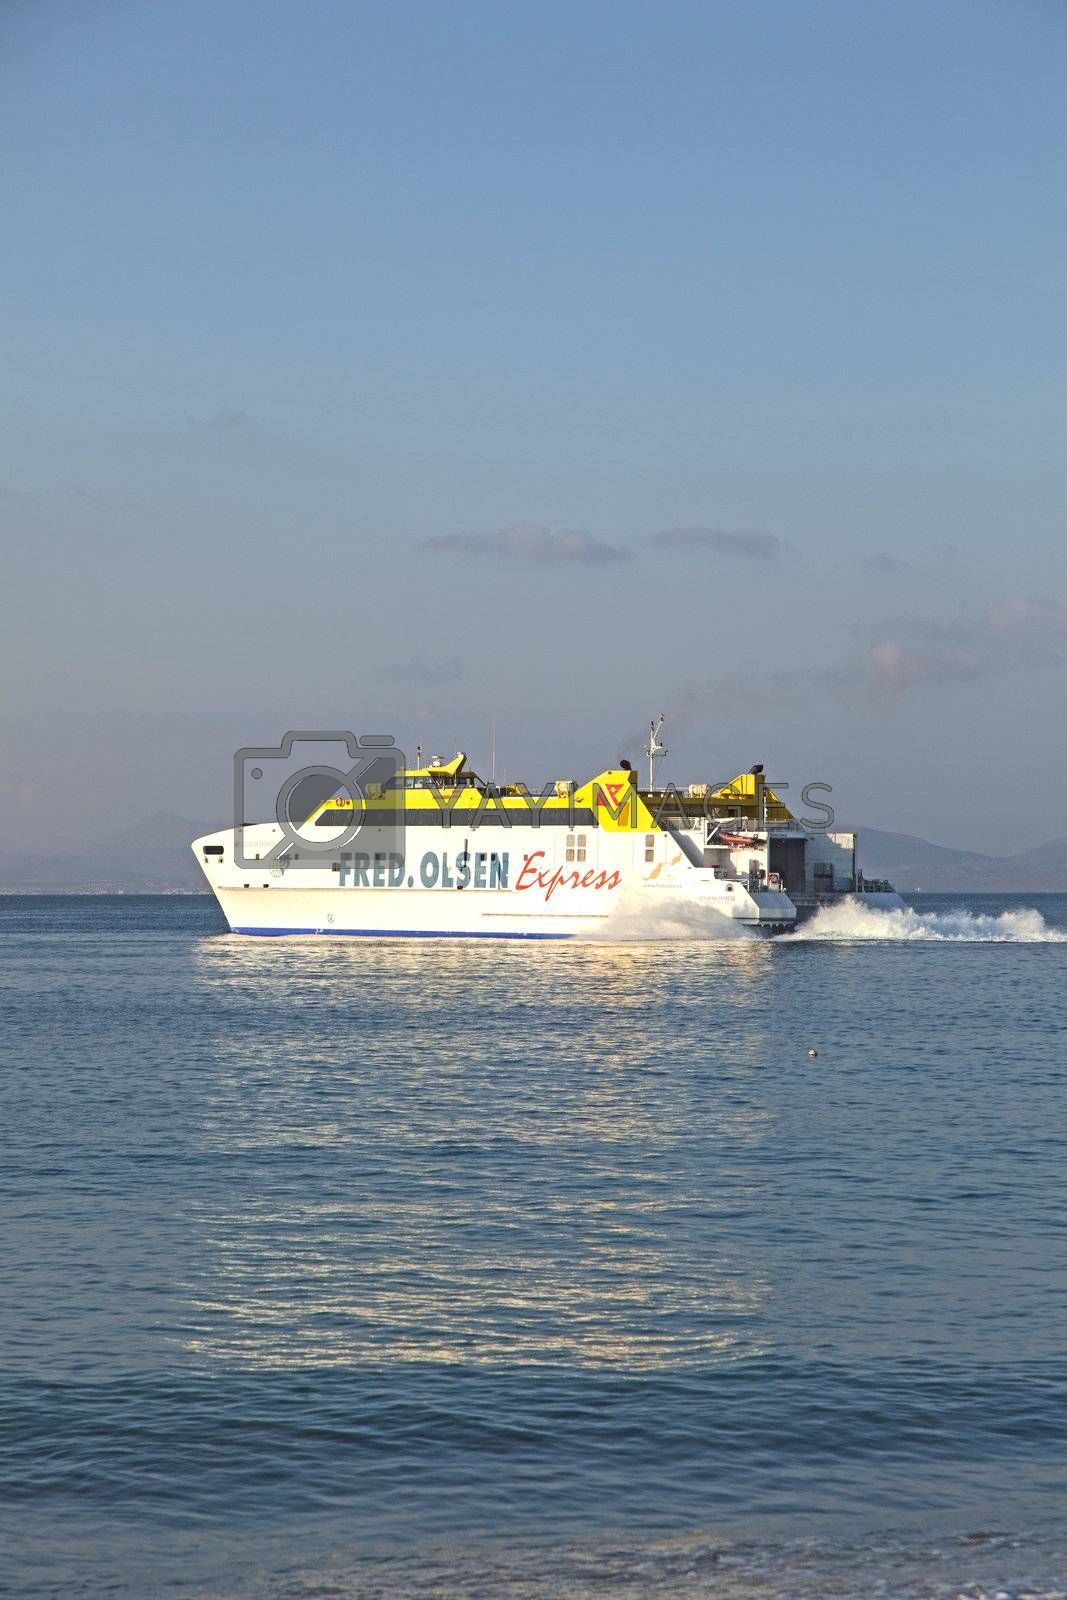 ferry Bocayna Express from Fred Olsen on the ocean by meinzahn